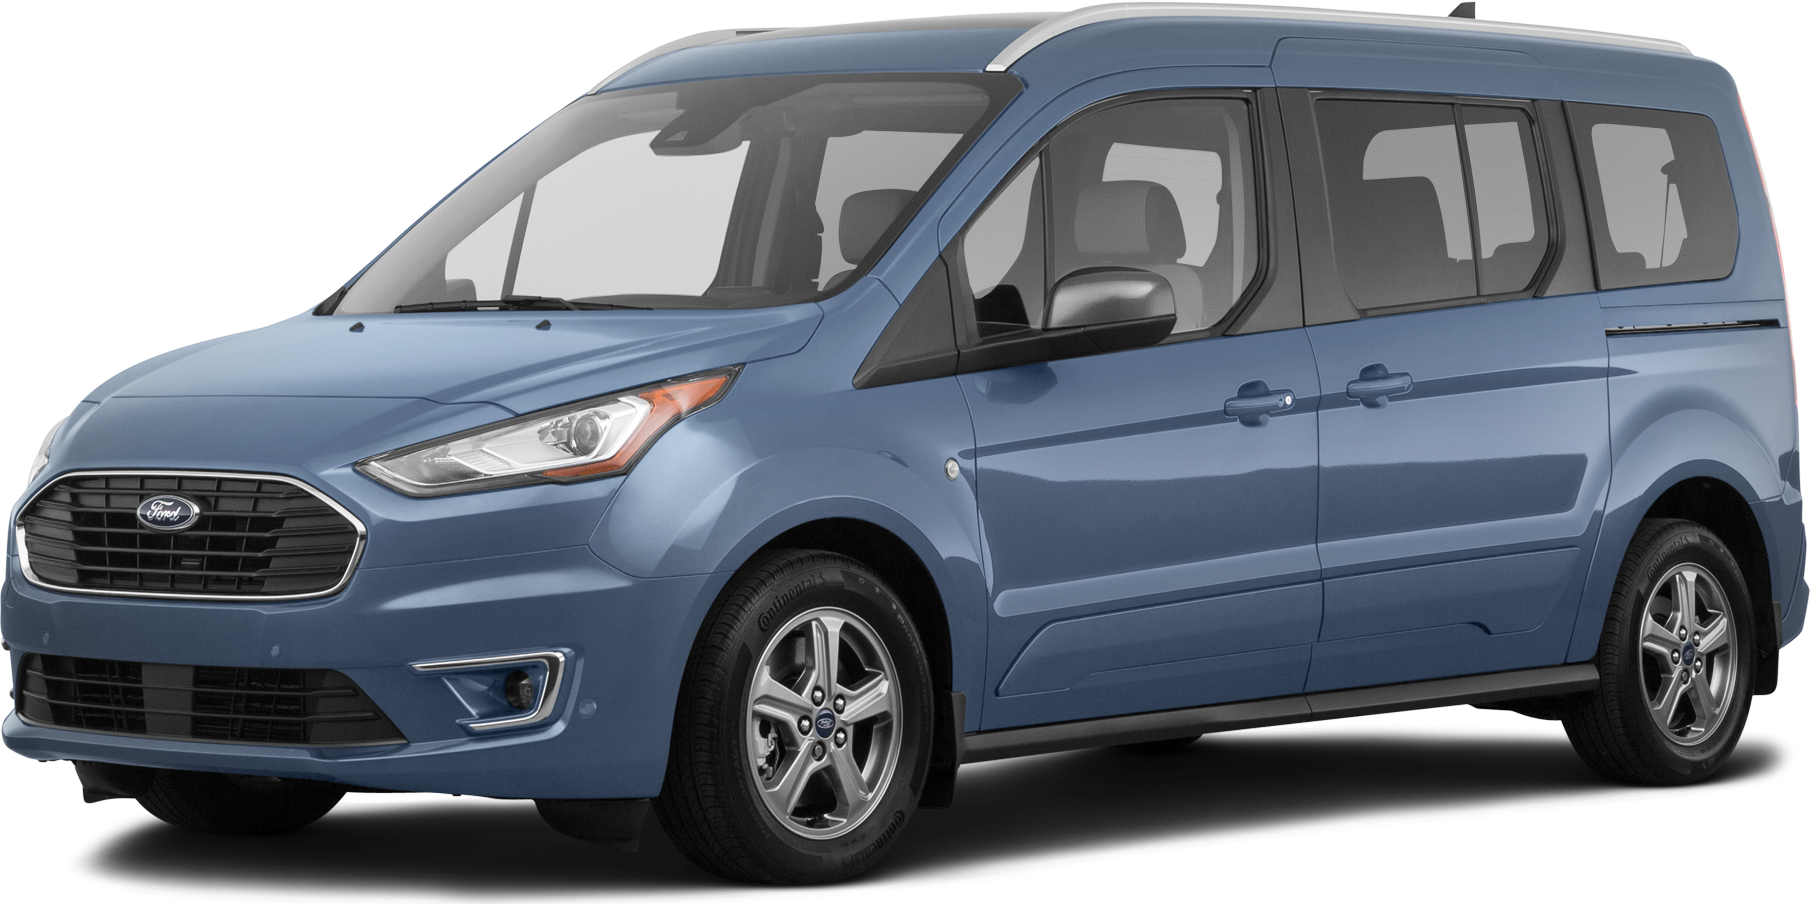 2020 ford transit connect prices reviews pictures kelley blue book 2020 ford transit connect prices